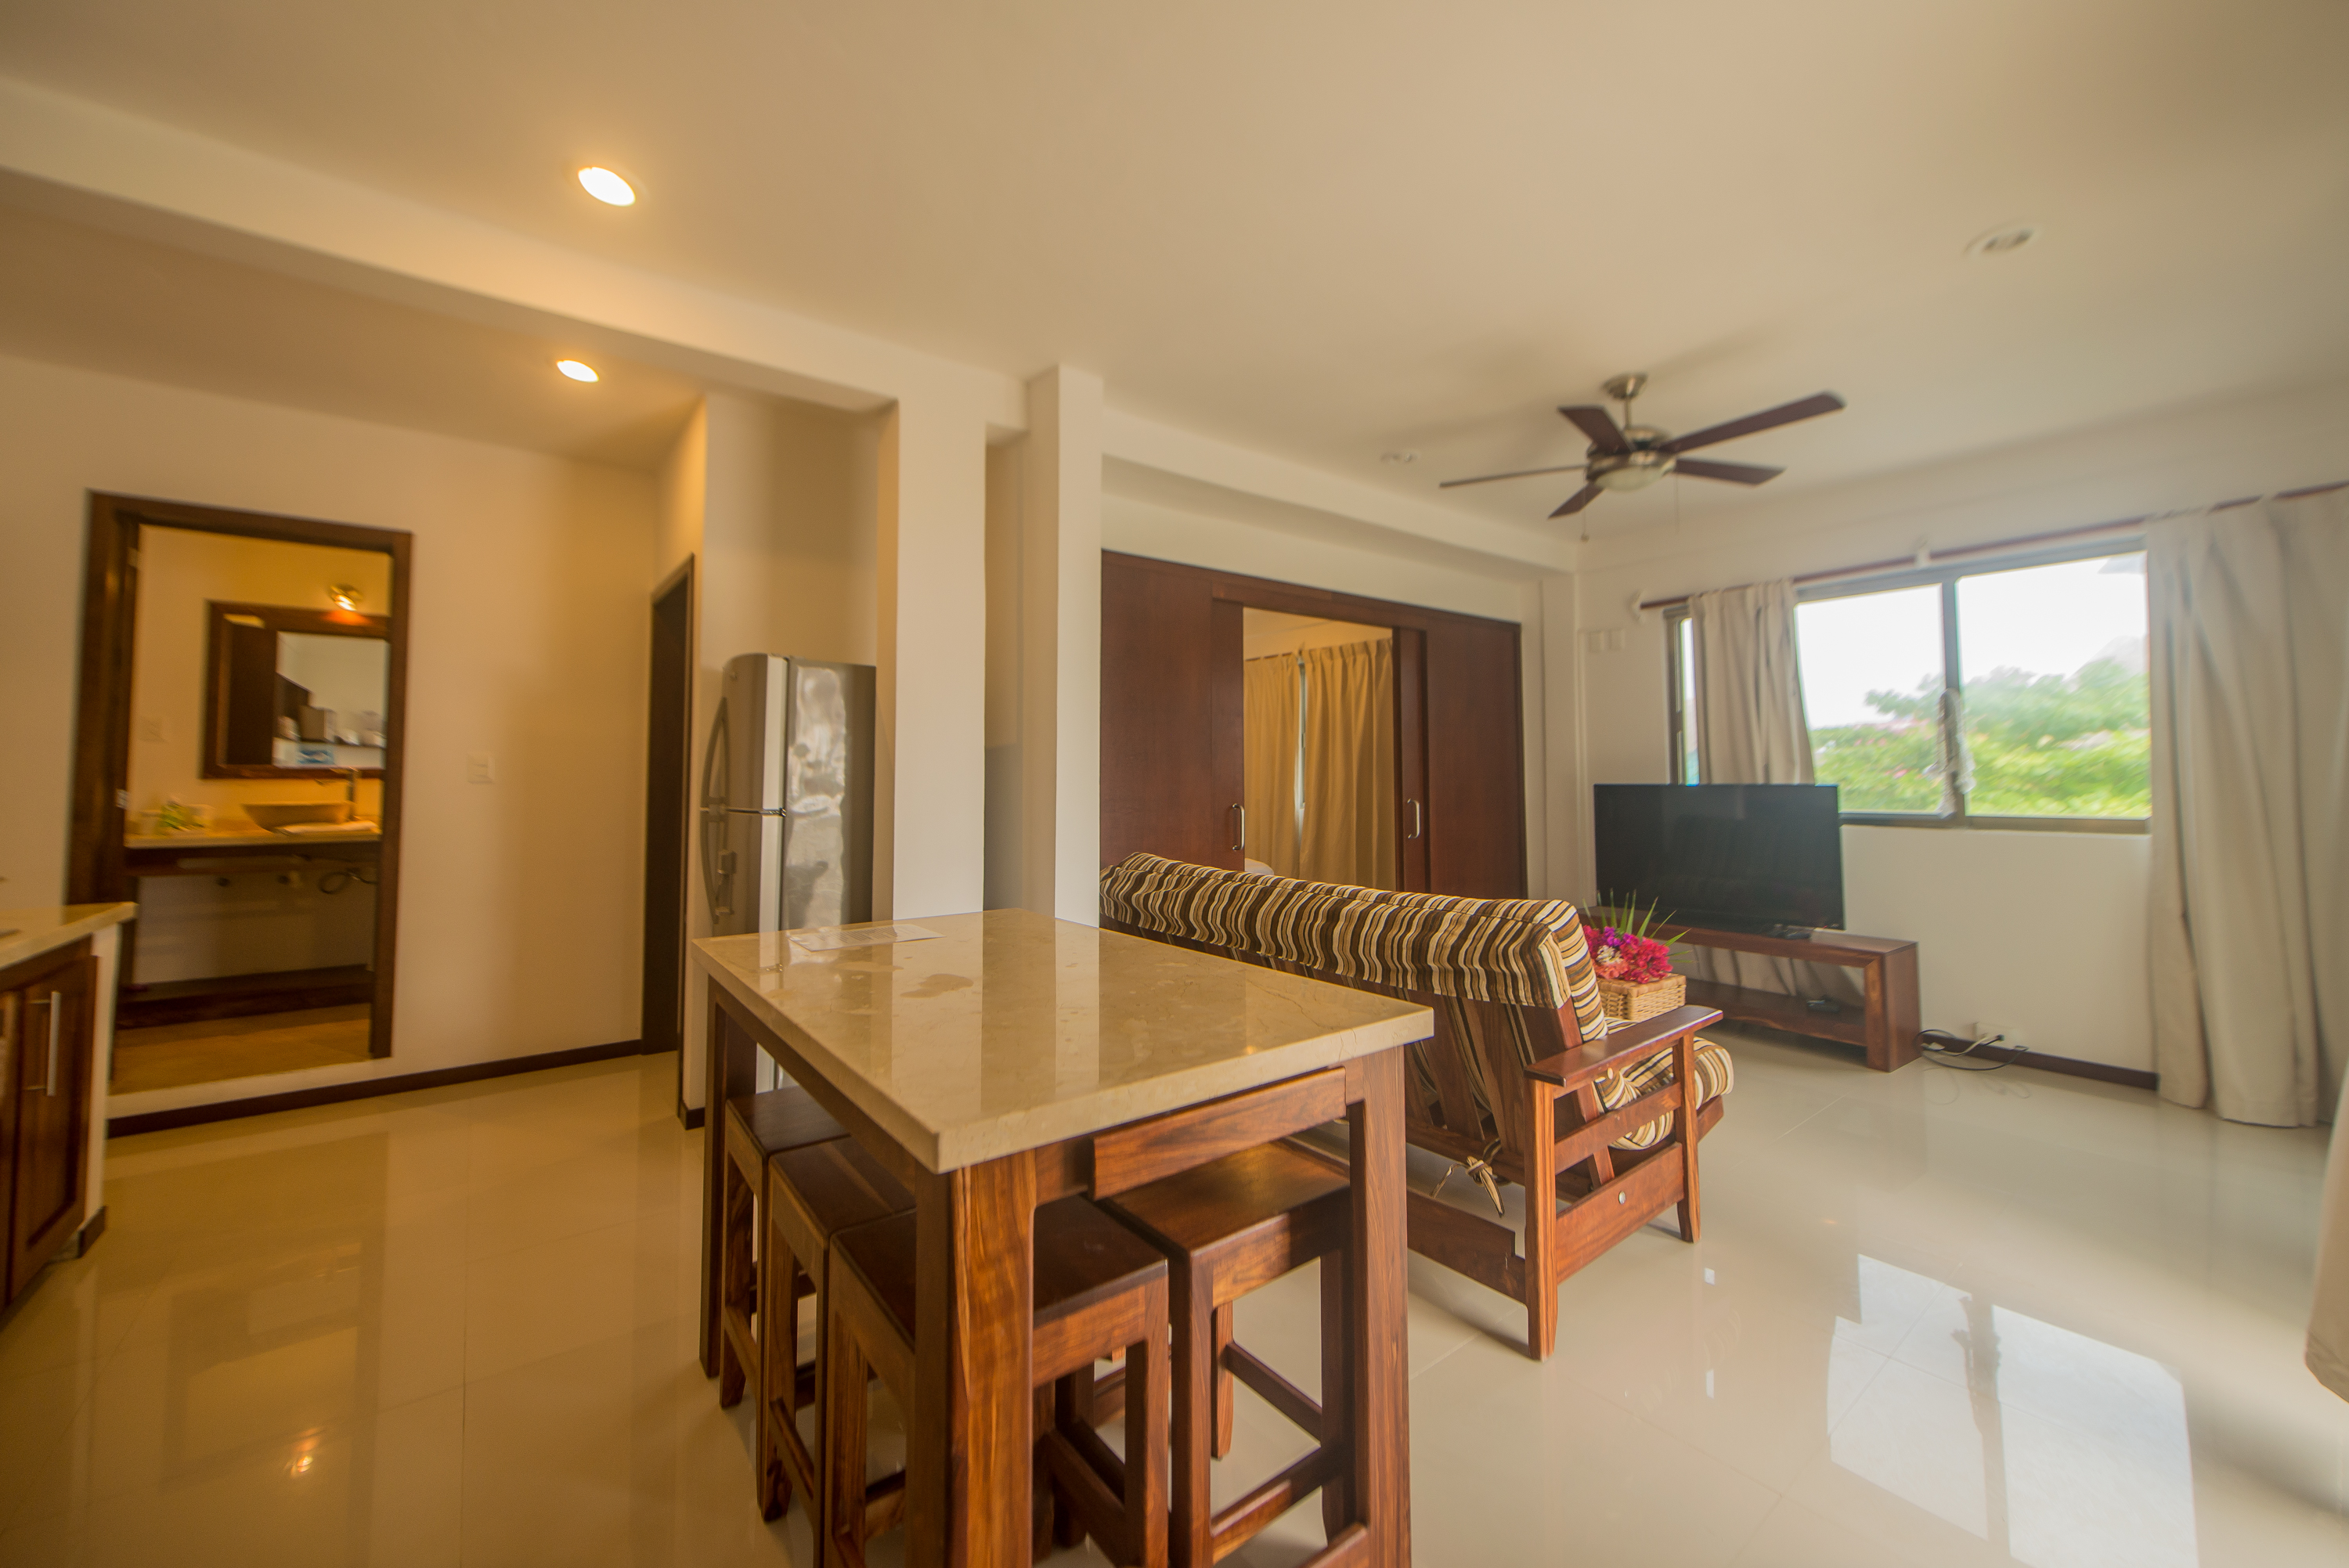 For rent in Mahahual, Costa Maya